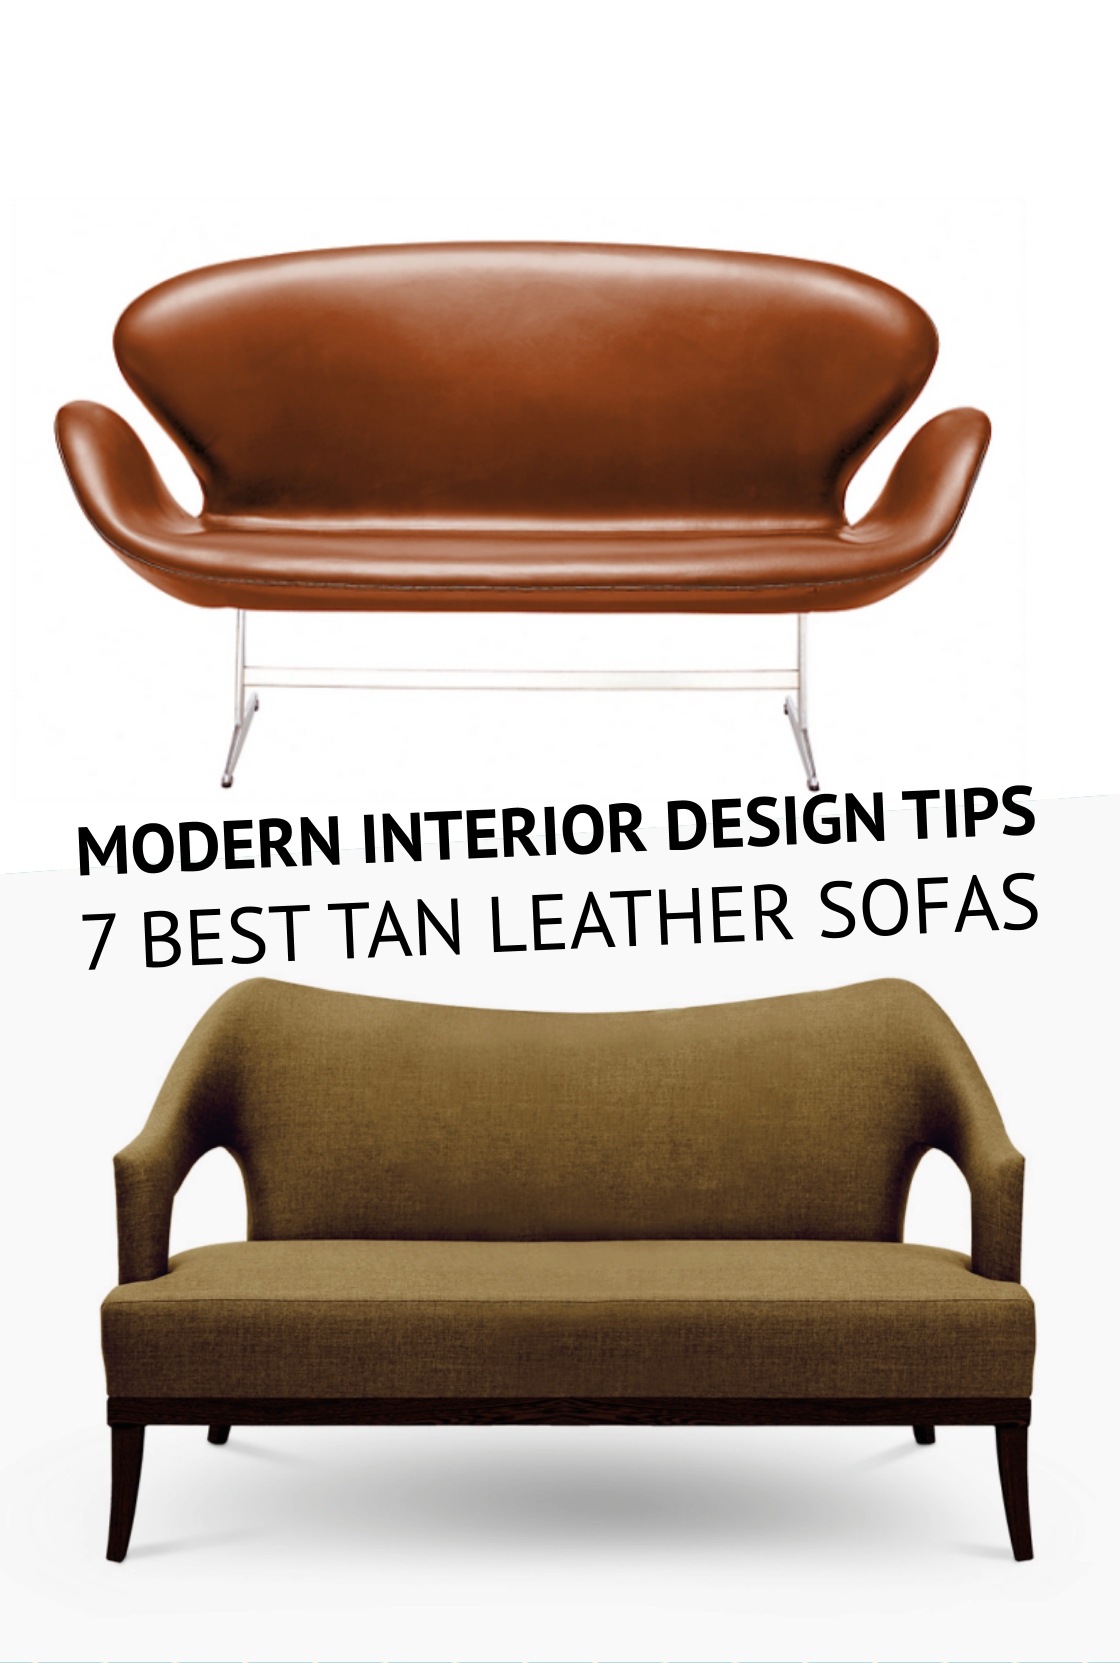 Modern Interior Design Tips 7 Best Tan Leather Sofas U2013 Inspirations And  Ideas